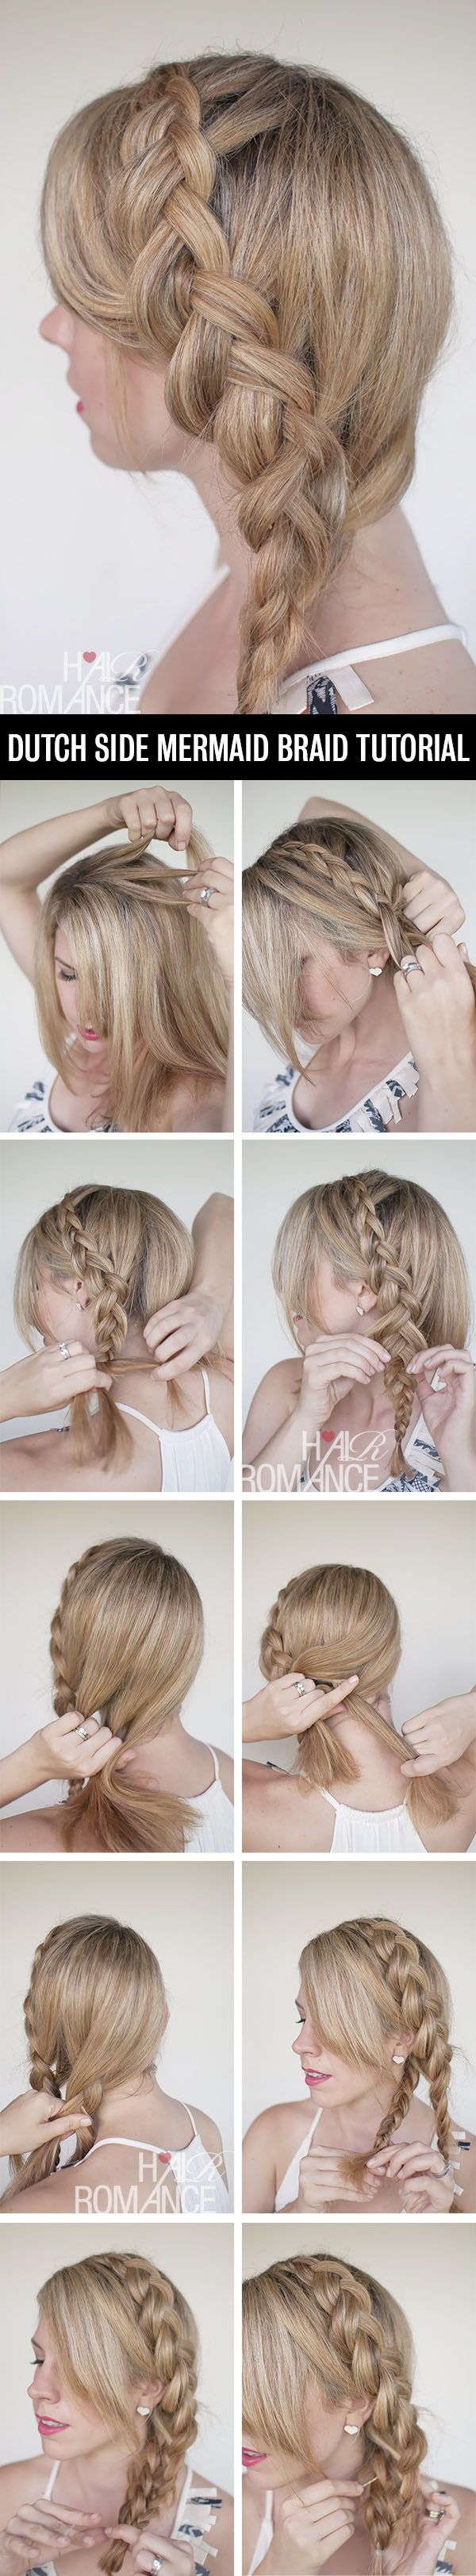 I believe every girl loves braided hairstyles for their pretty looks and styles. Besides, most of braided hairstyles are not as complicated as they look. It will only take a few minutes to make them in the morning. And you will look fabulous for a whole day. Today, I will show you 12 romantic braided[Read the Rest]